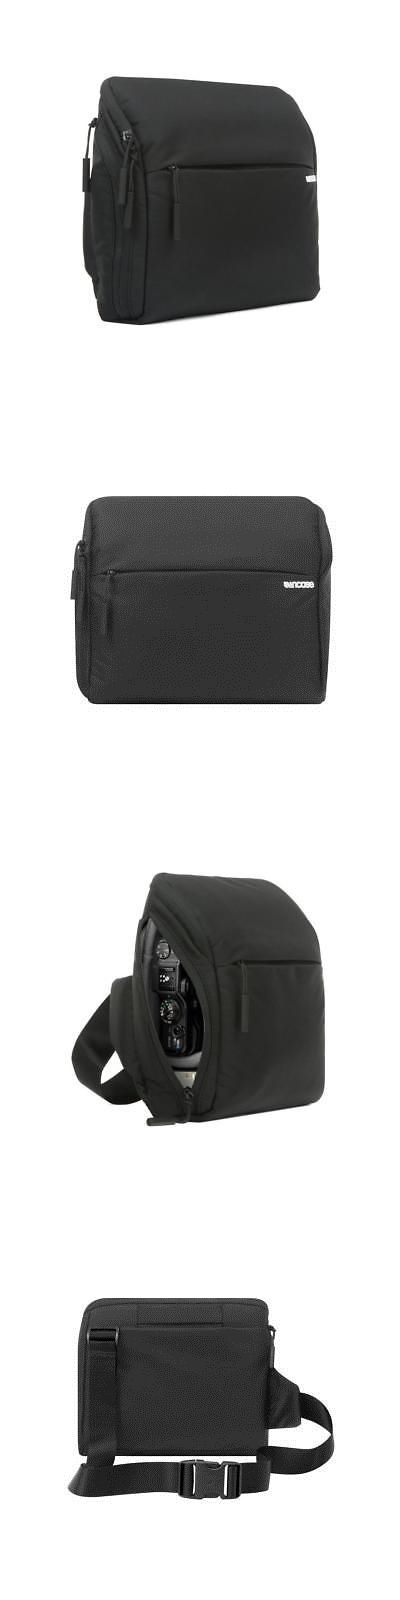 Other Camping Hiking Backpacks 36109: Incase Point And Shoot Field Camera Nylon Bag, Black Heather #Cl58066 -> BUY IT NOW ONLY: $49.95 on eBay!